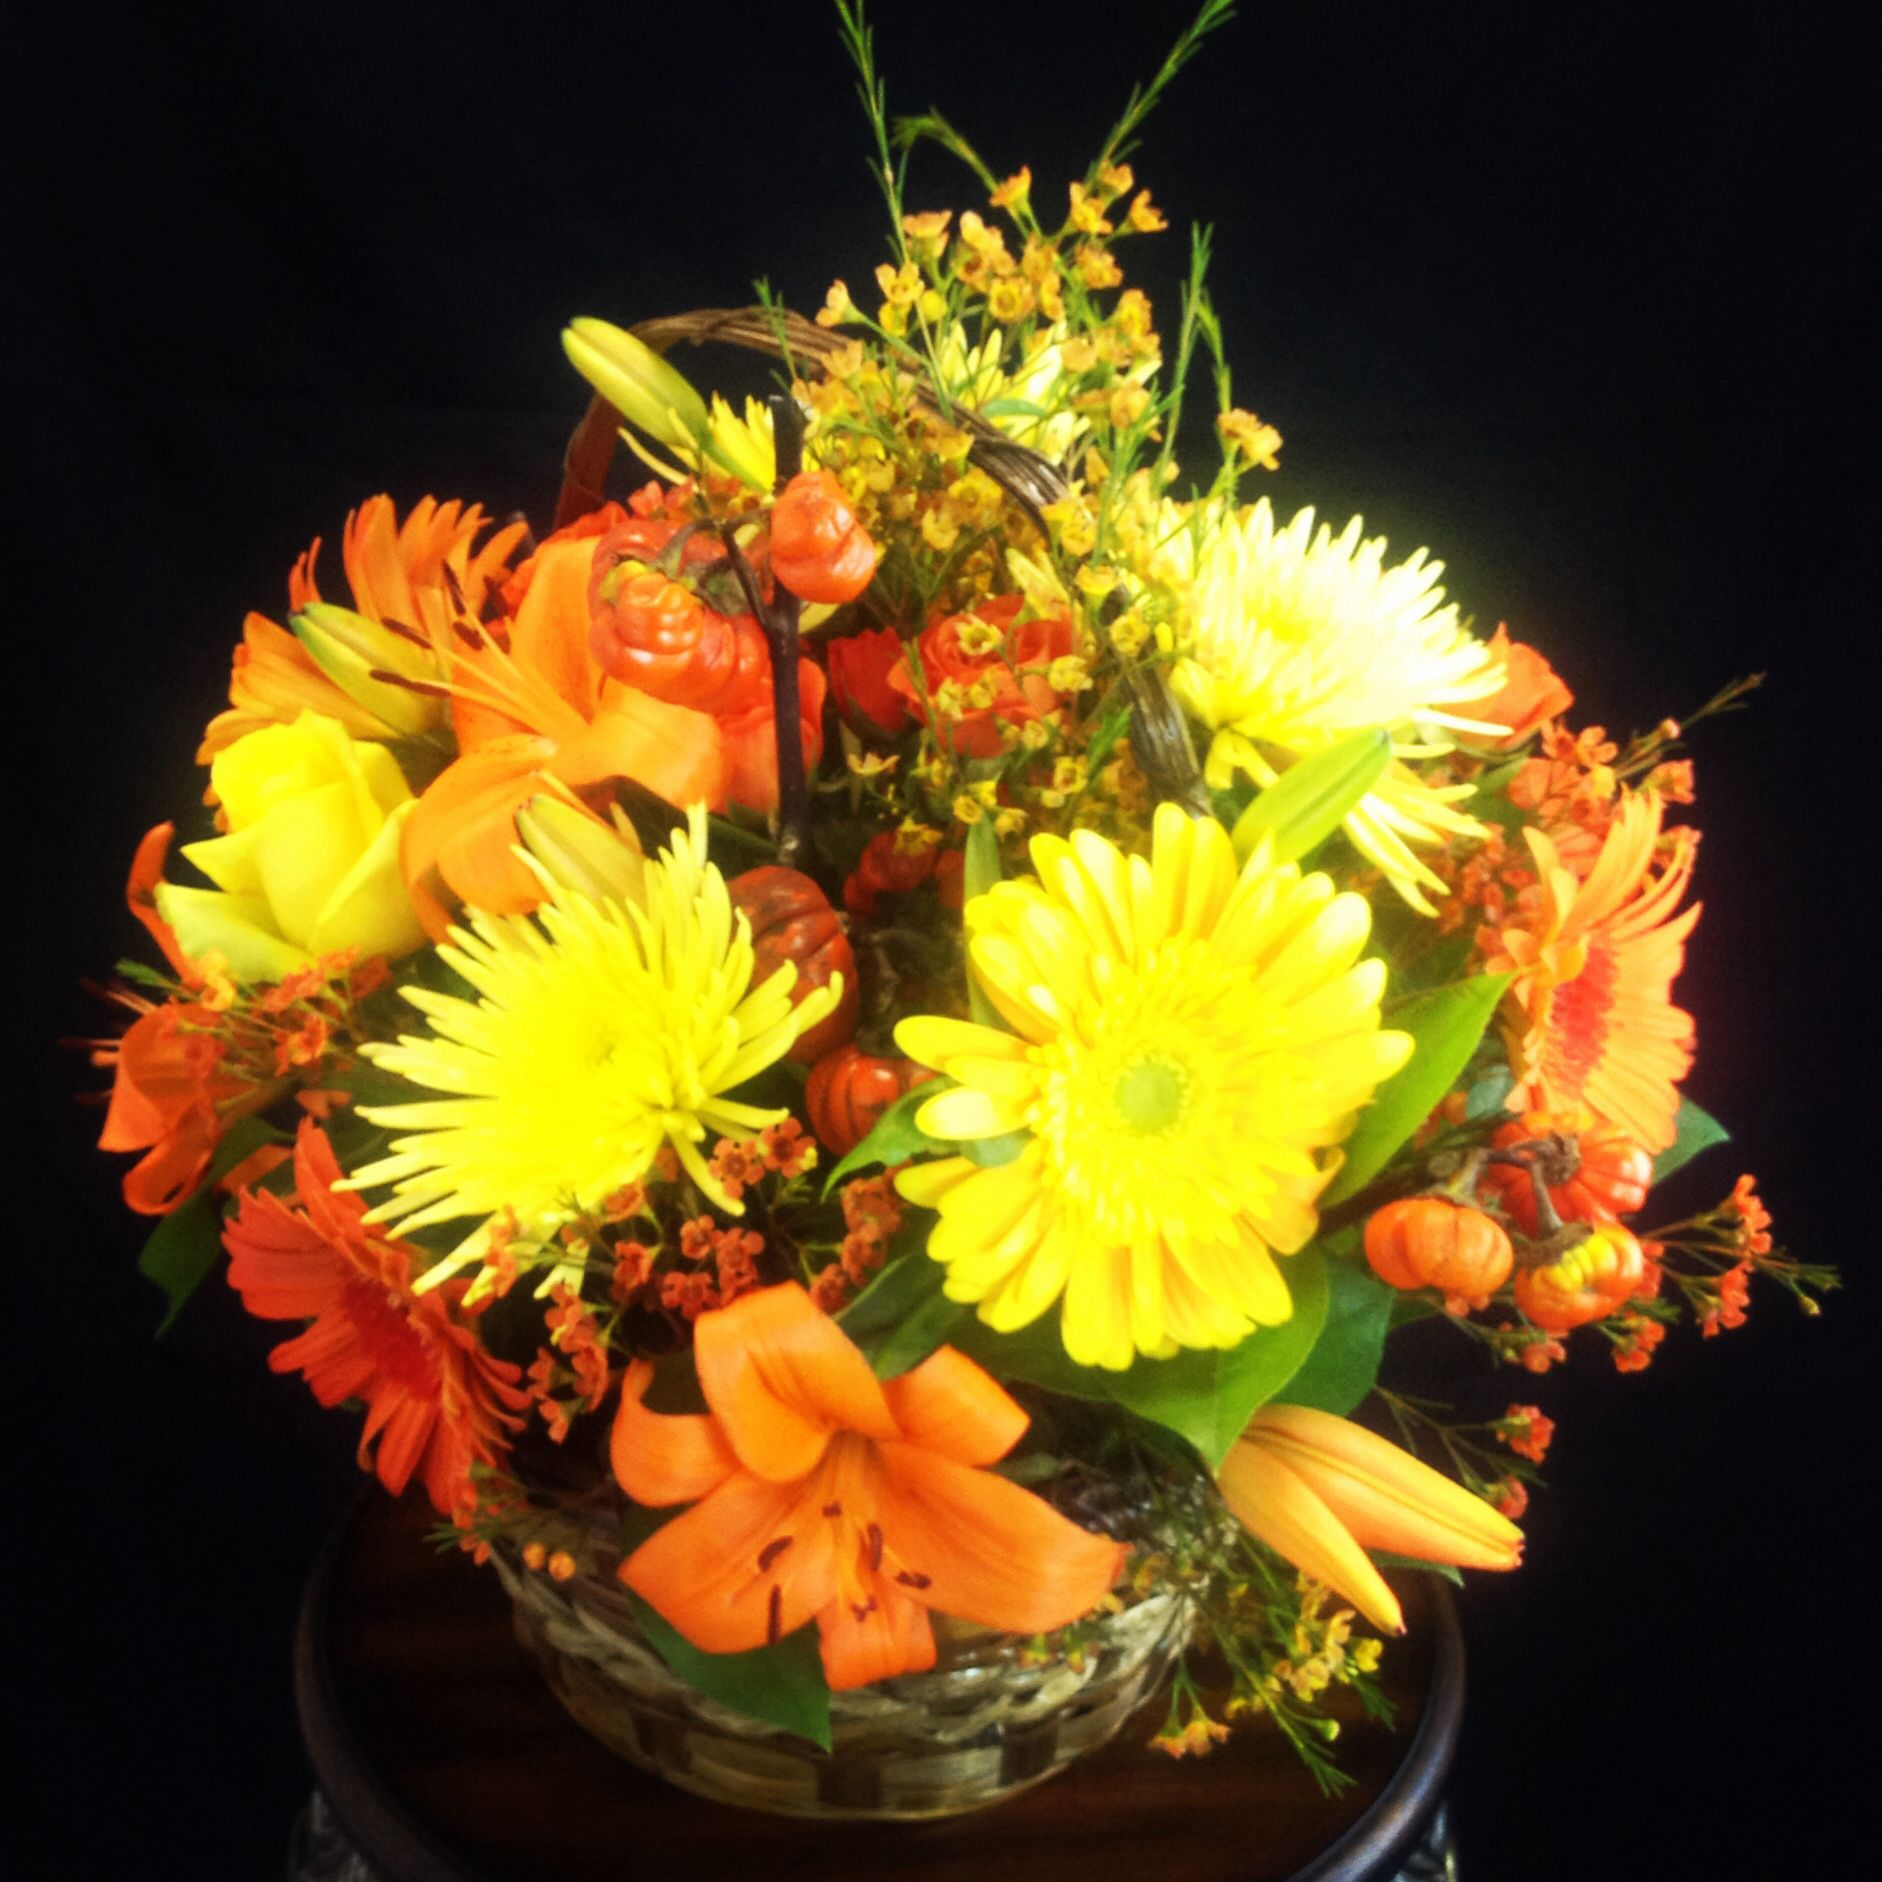 Beautiful fall flower arrangement at gardenofroses beautiful fall flower arrangement at gardenofroses ieflorist florist izmirmasajfo